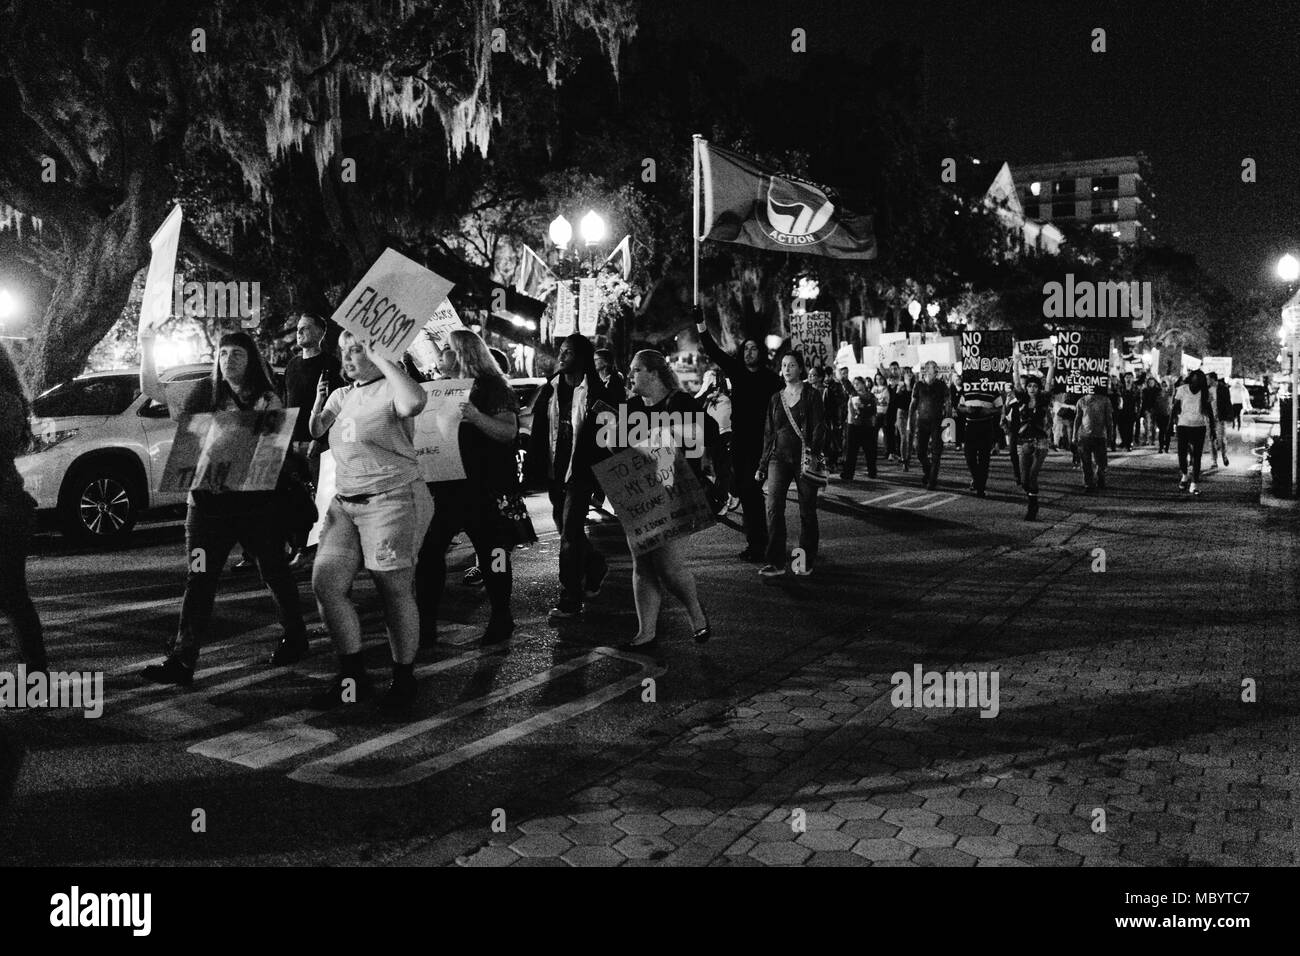 Peaceful Protest Black and White Stock Photos & Images - Alamy